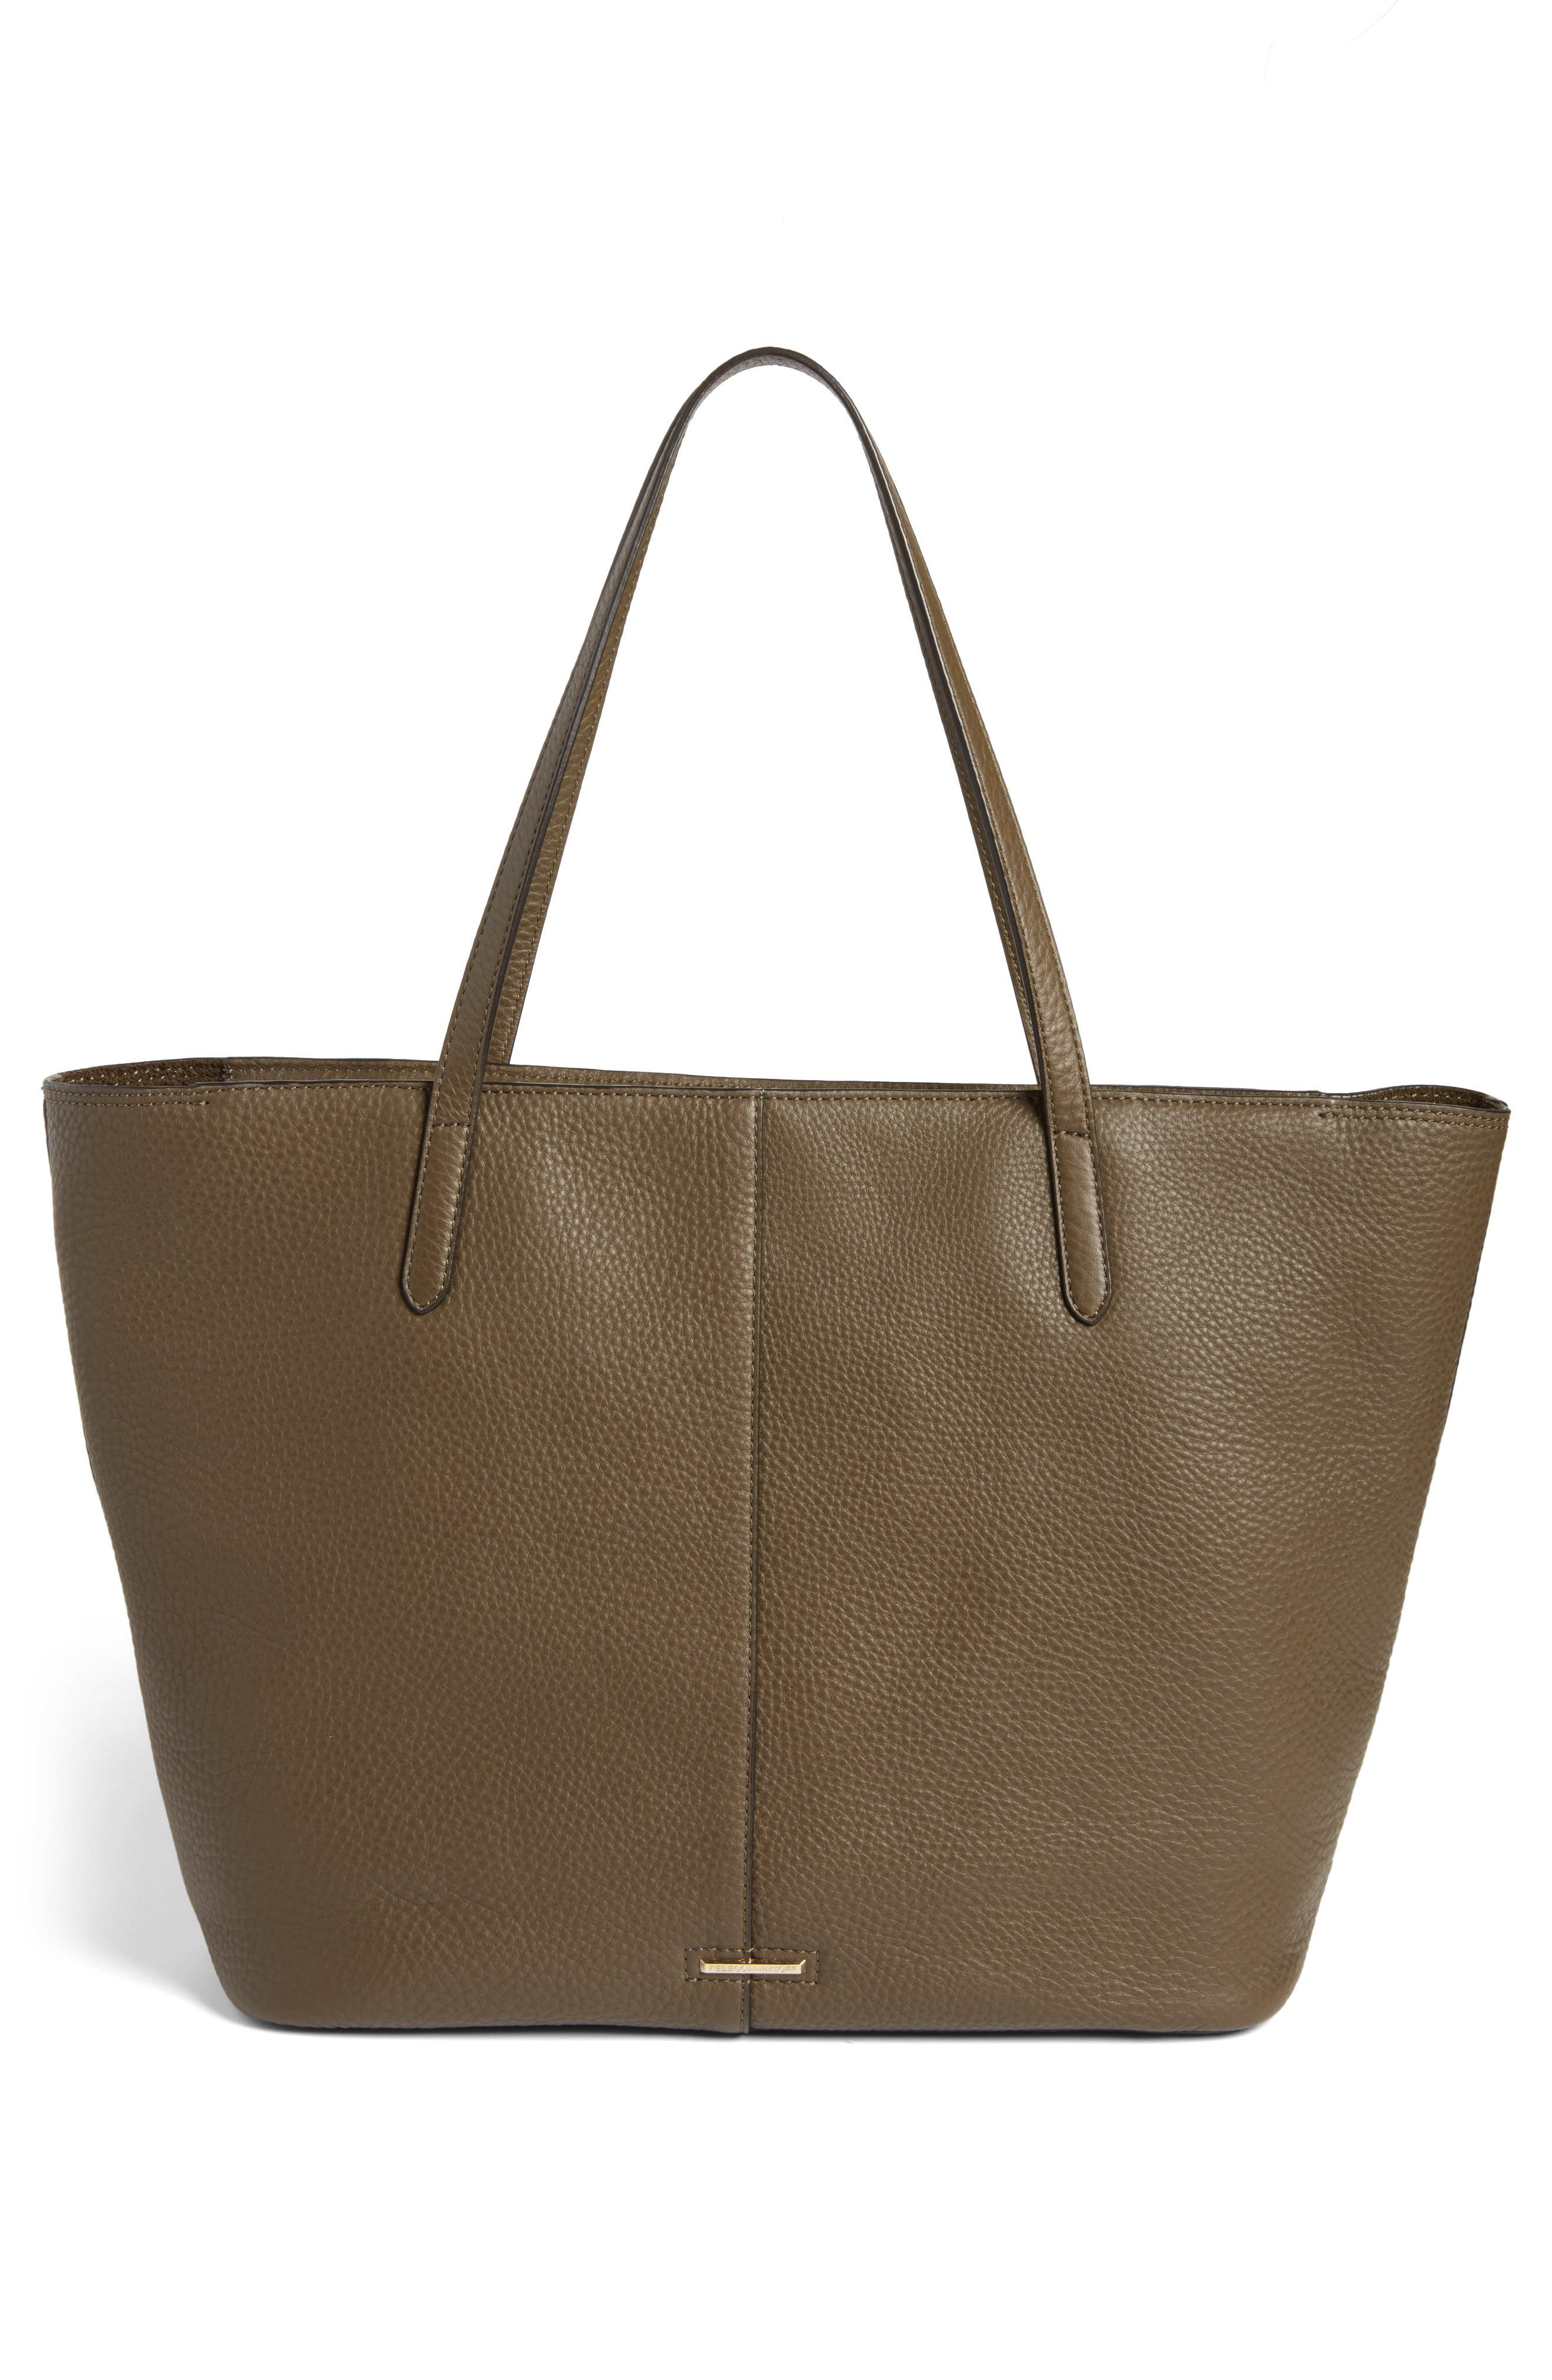 Alternate Image 3  - Rebecca Minkoff Unlined Front Pocket Leather Tote (Nordstrom Exclusive)